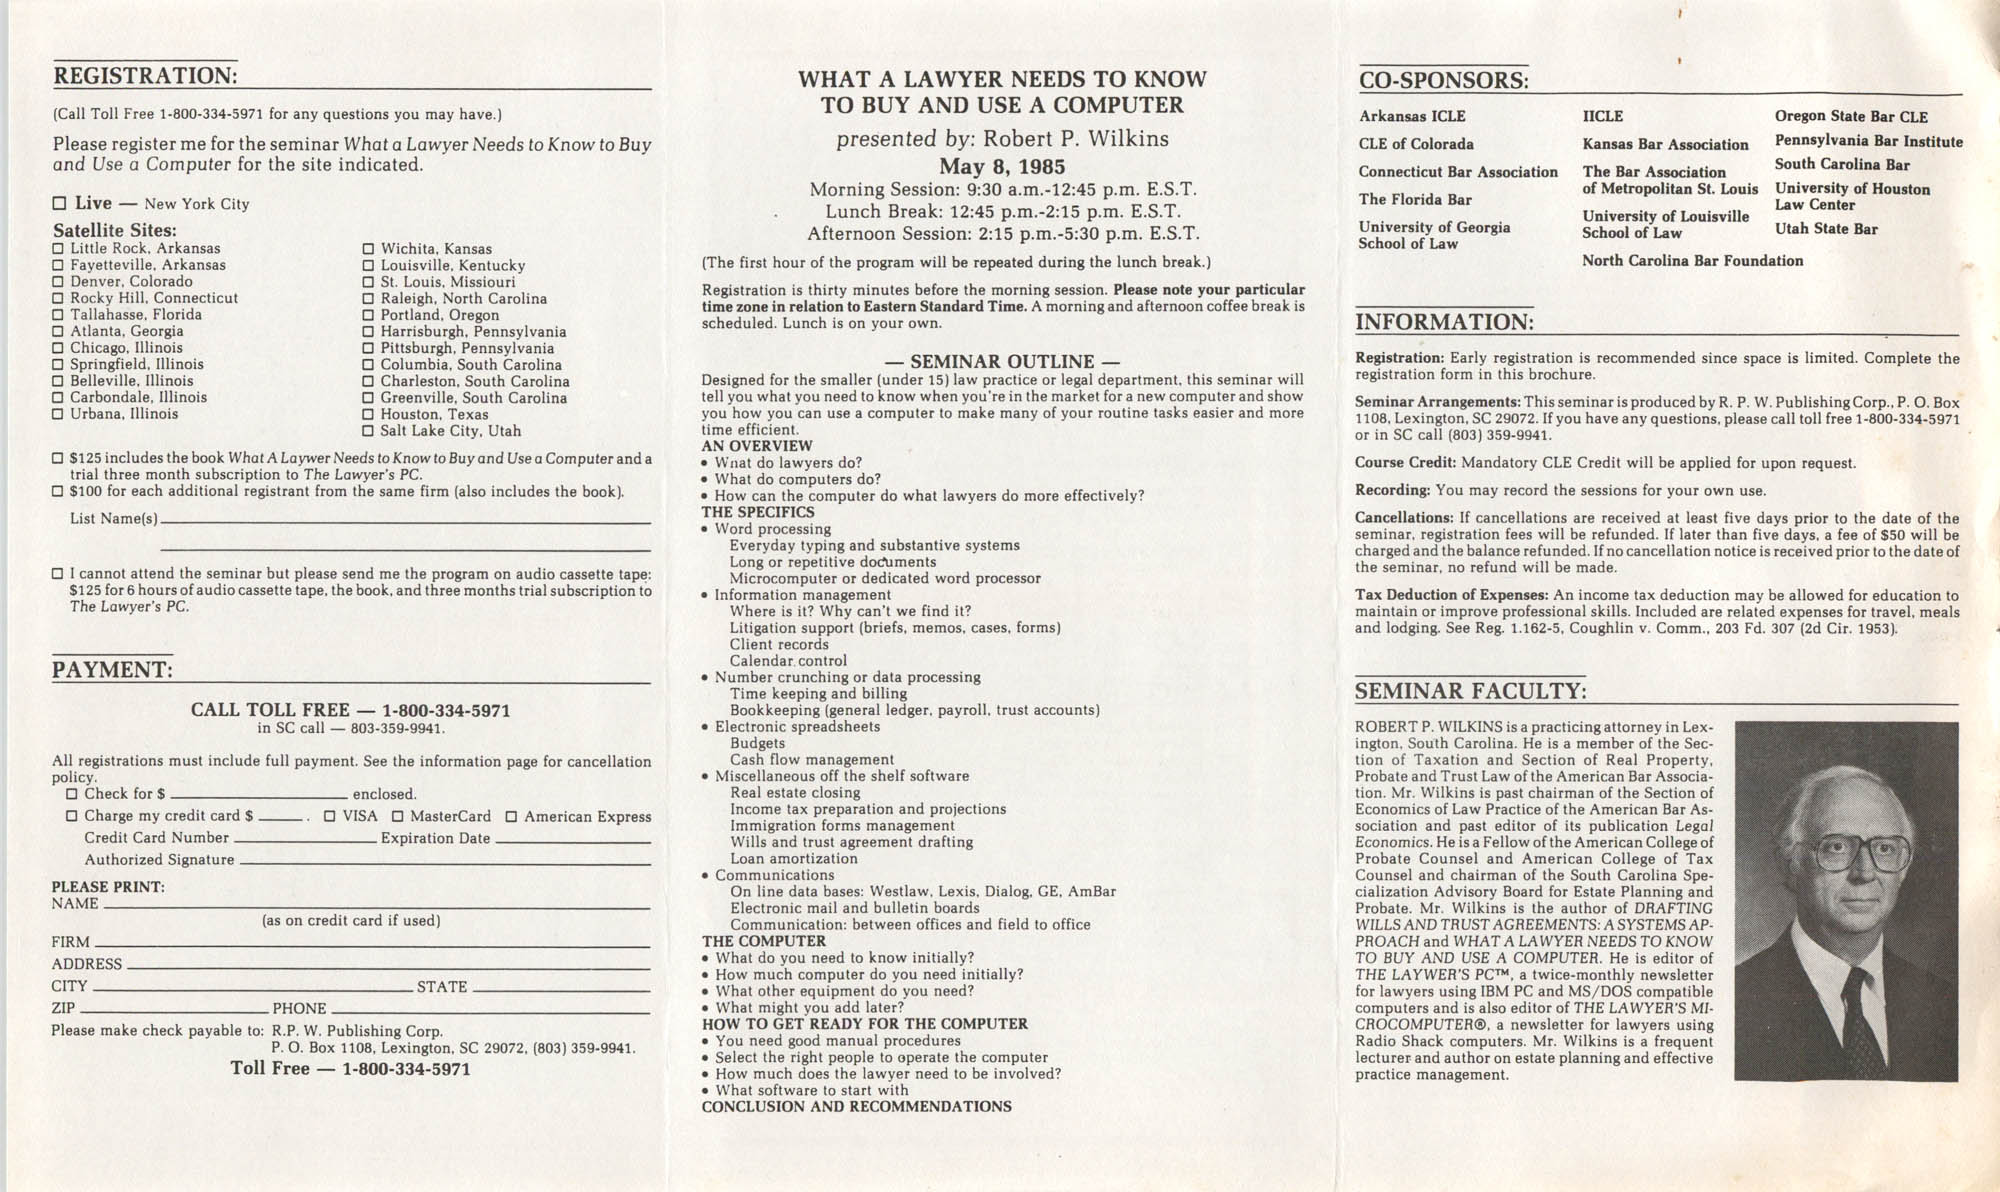 What a Lawyer Needs to Know to Buy and Use a Computer, Satellite Video/CLE Seminar Pamphlet, May 8, 1985